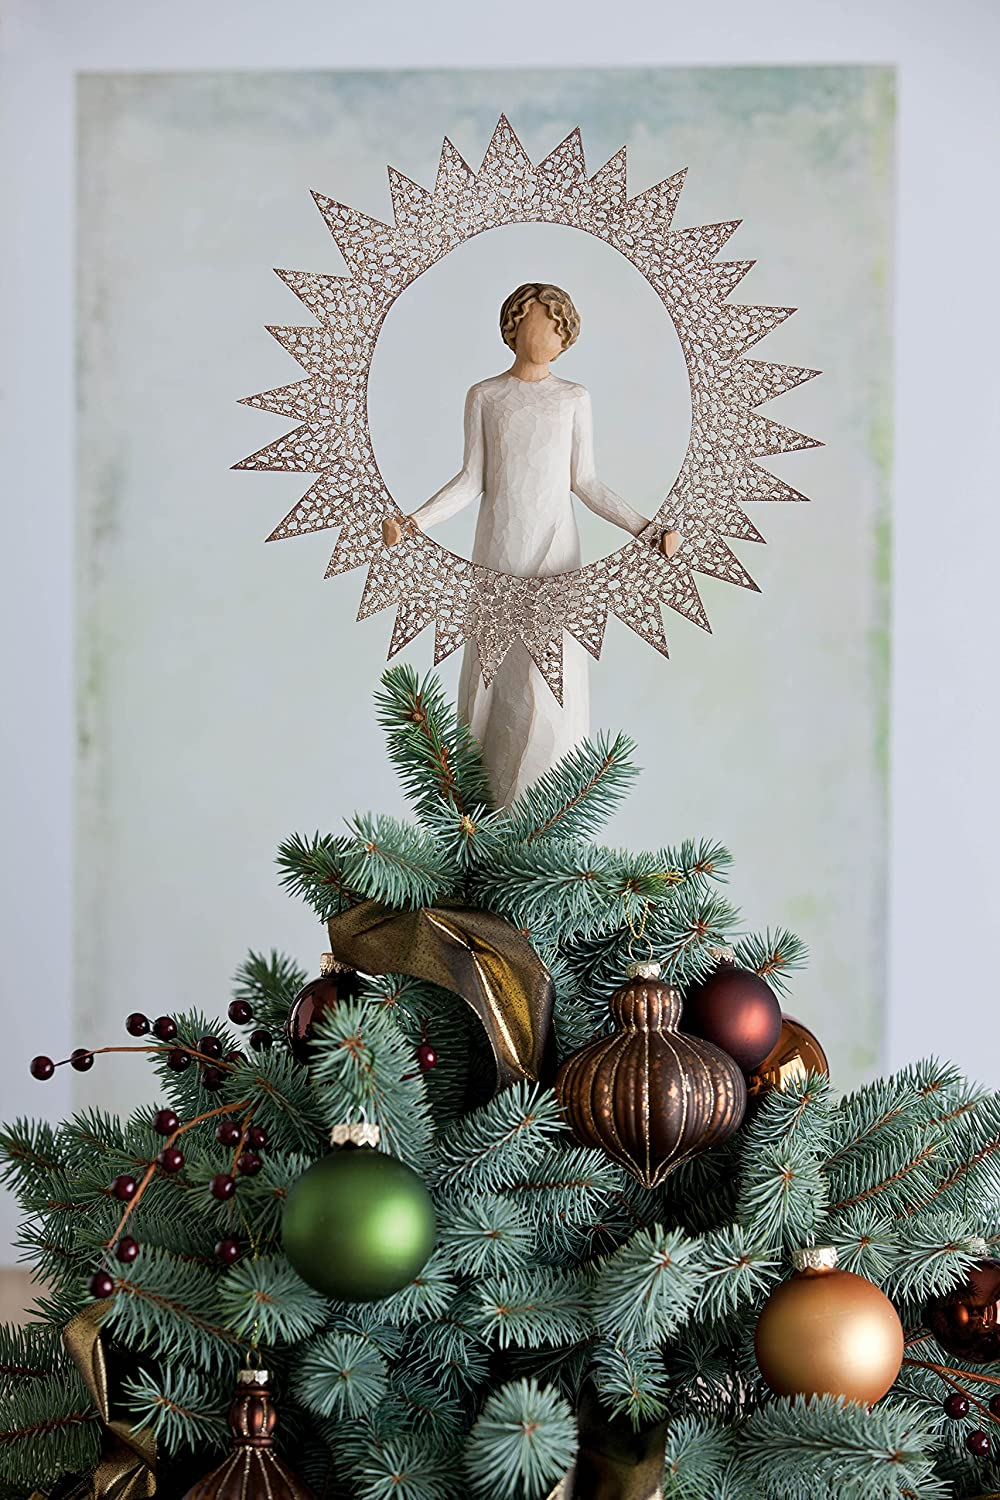 amazoncom willow tree 27277 starlight angel tree topper 12 inch height home kitchen - 12 Inch Christmas Tree